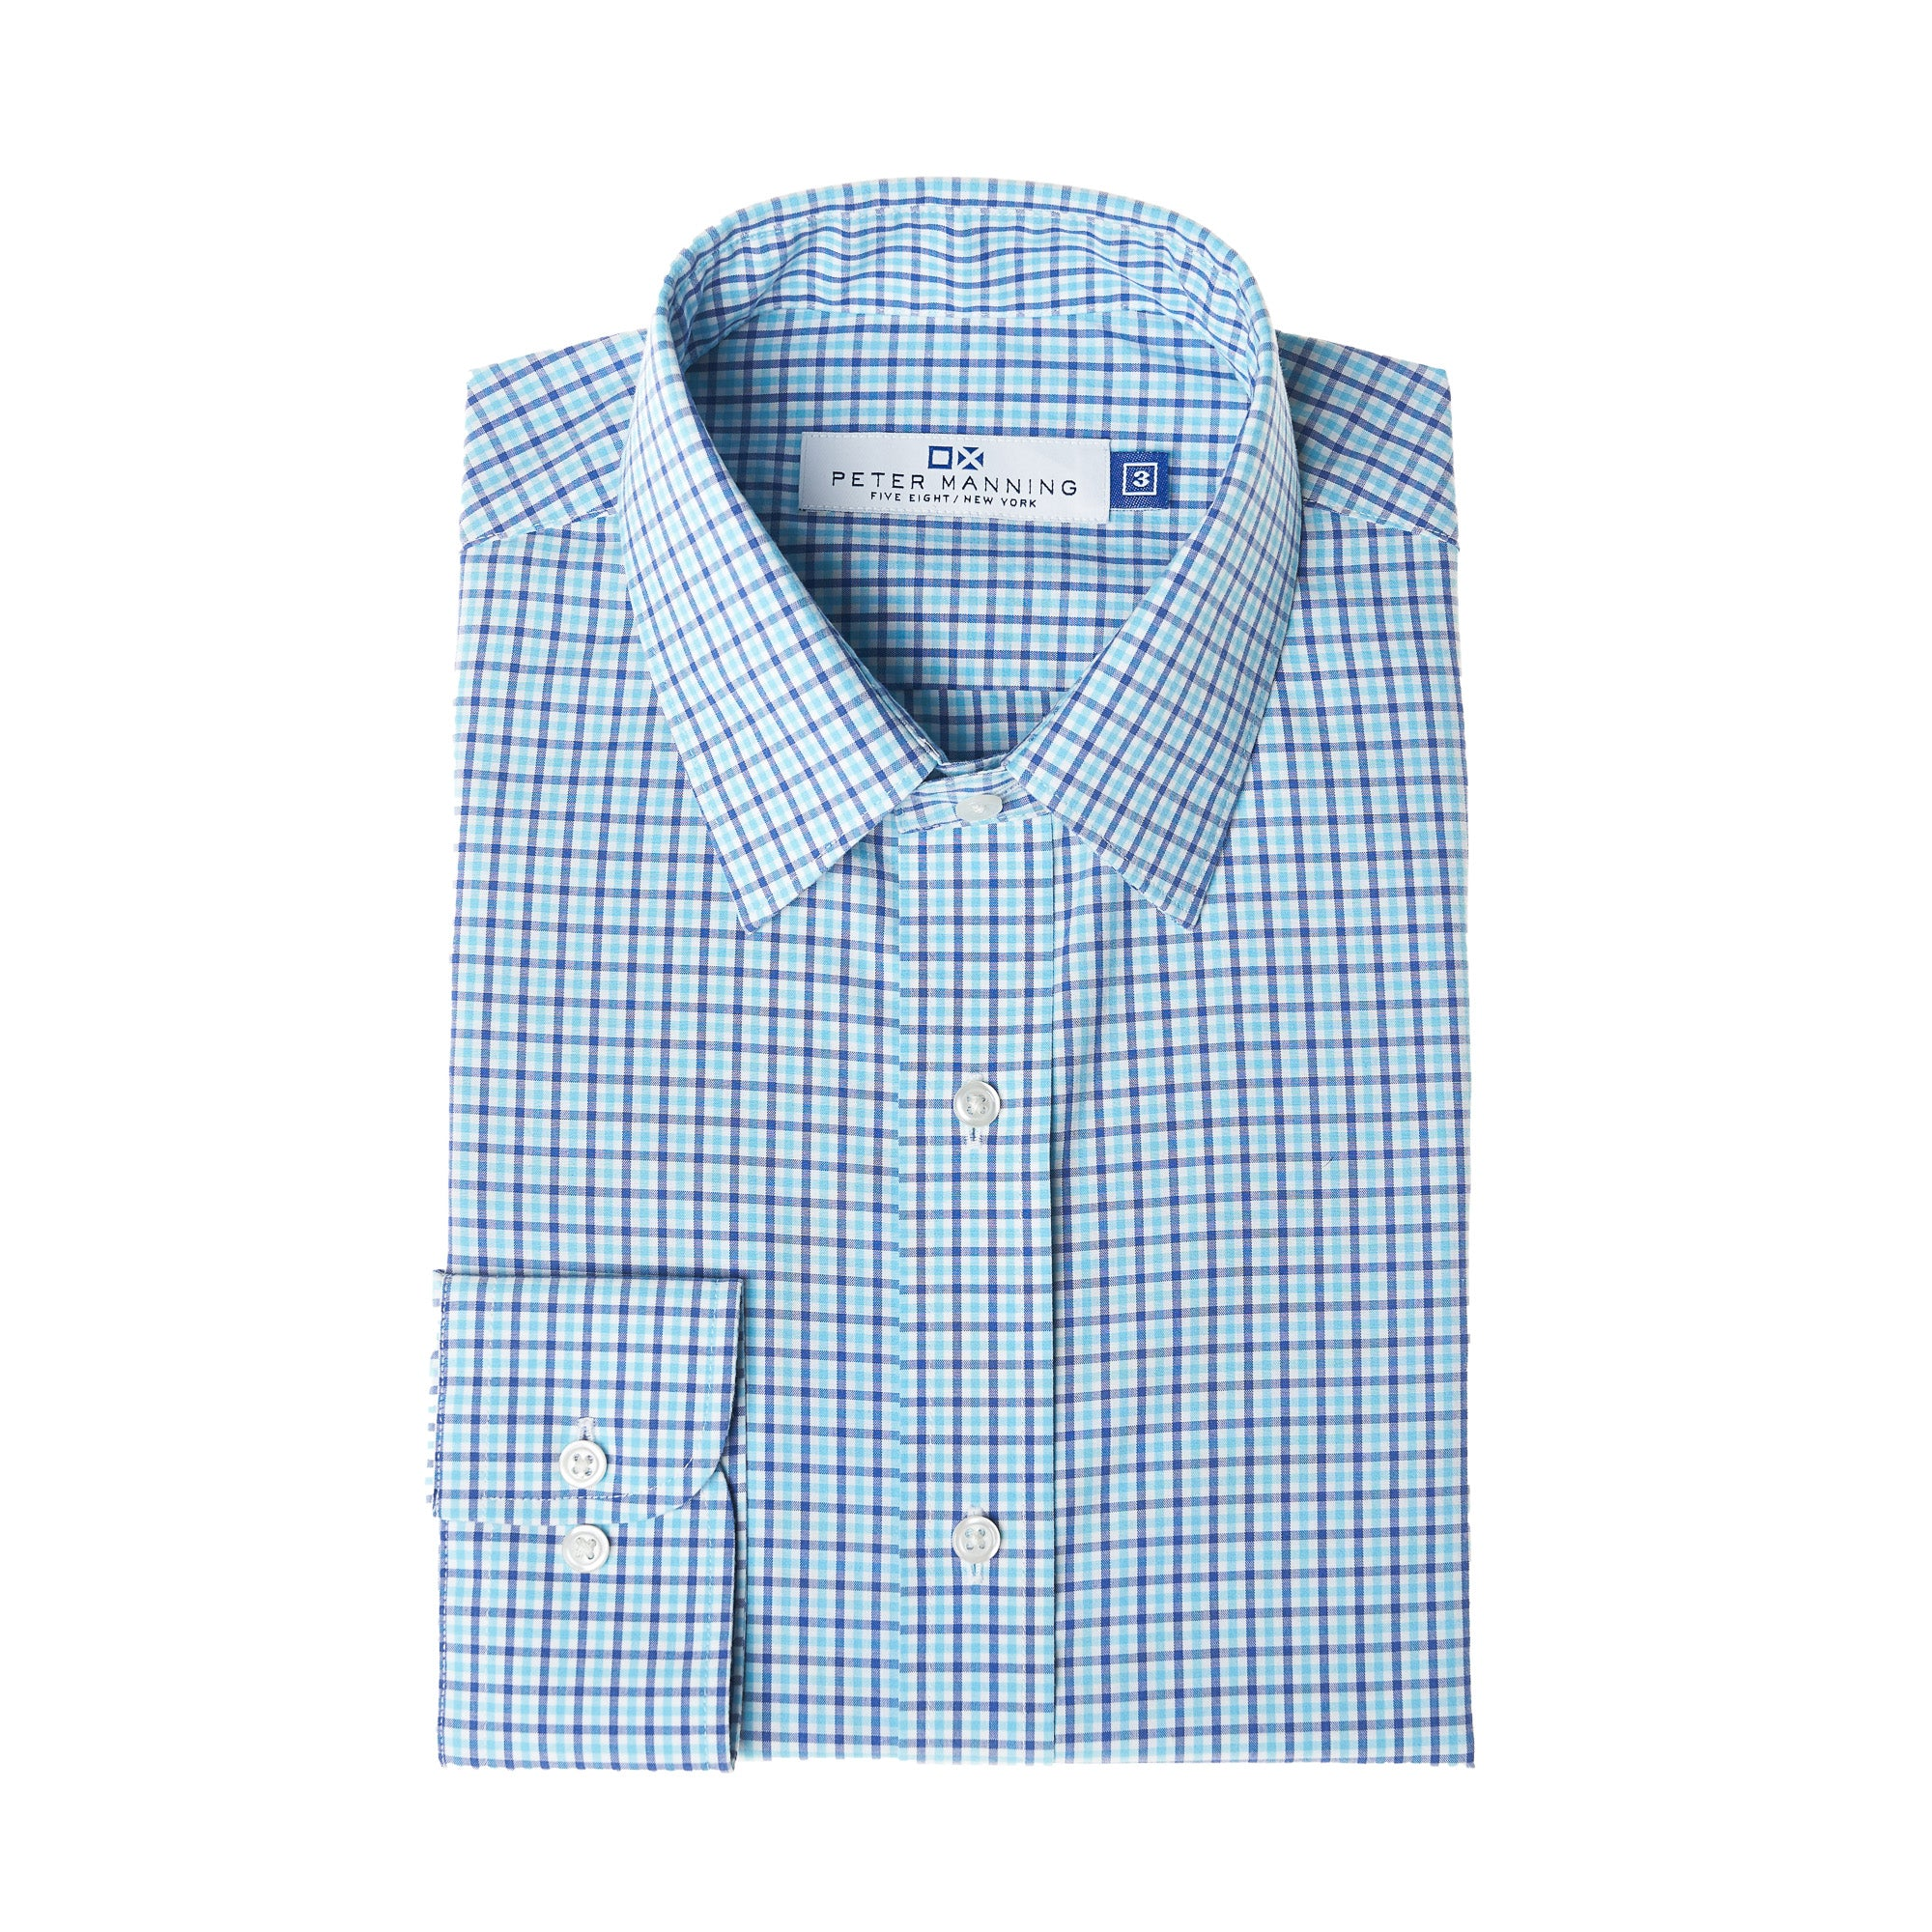 Easy Care Dress Shirt Standard Fit - Navy Aqua Check